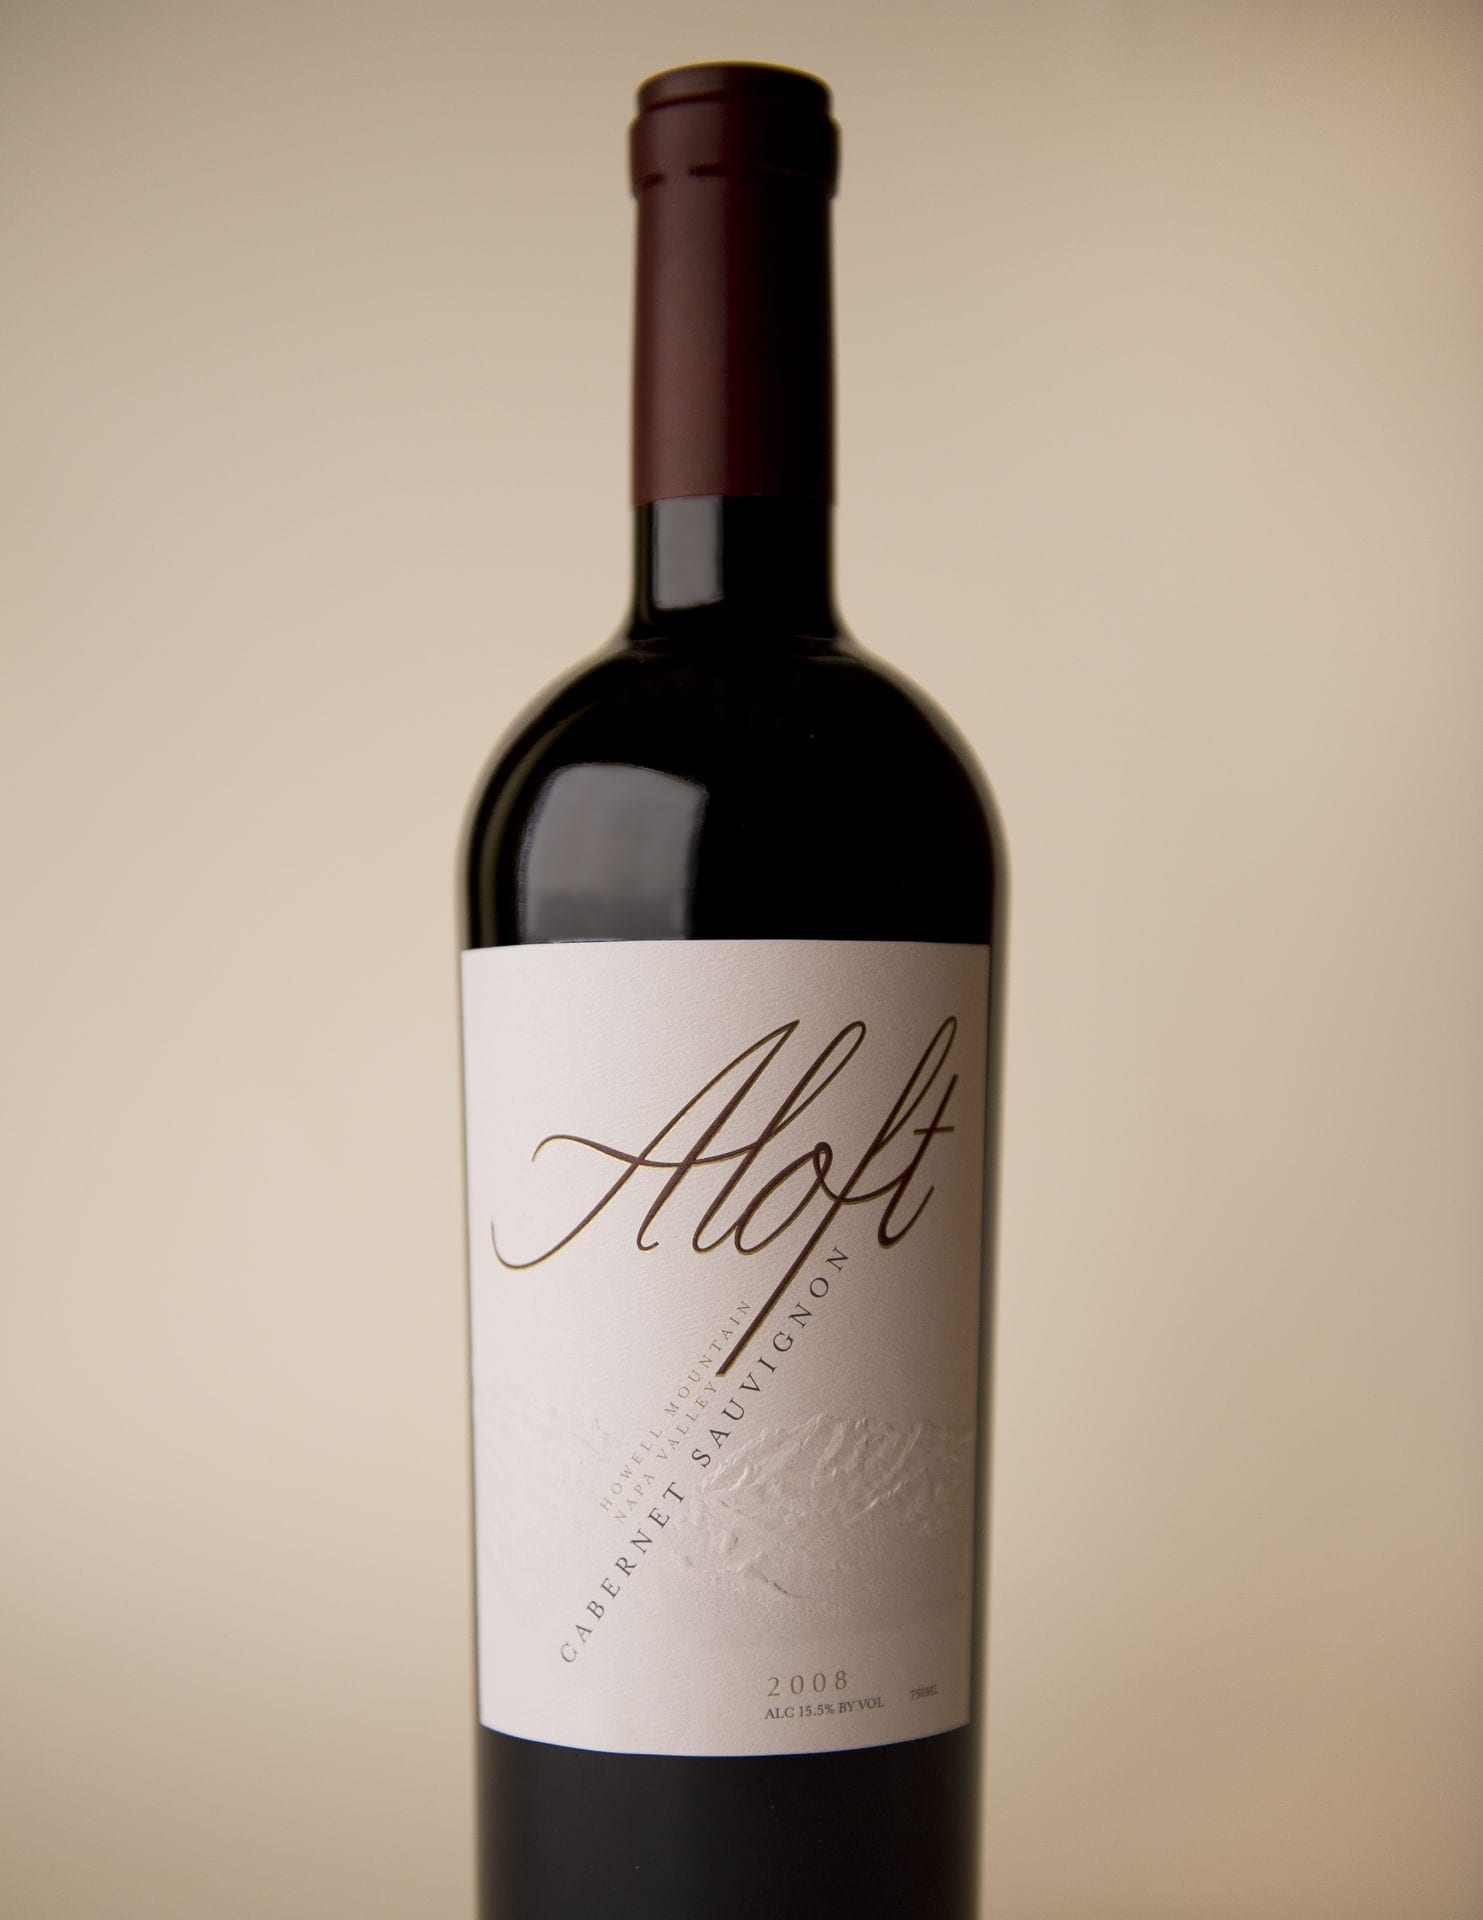 The wine bottle for Aloft Cabernet Sauvignon